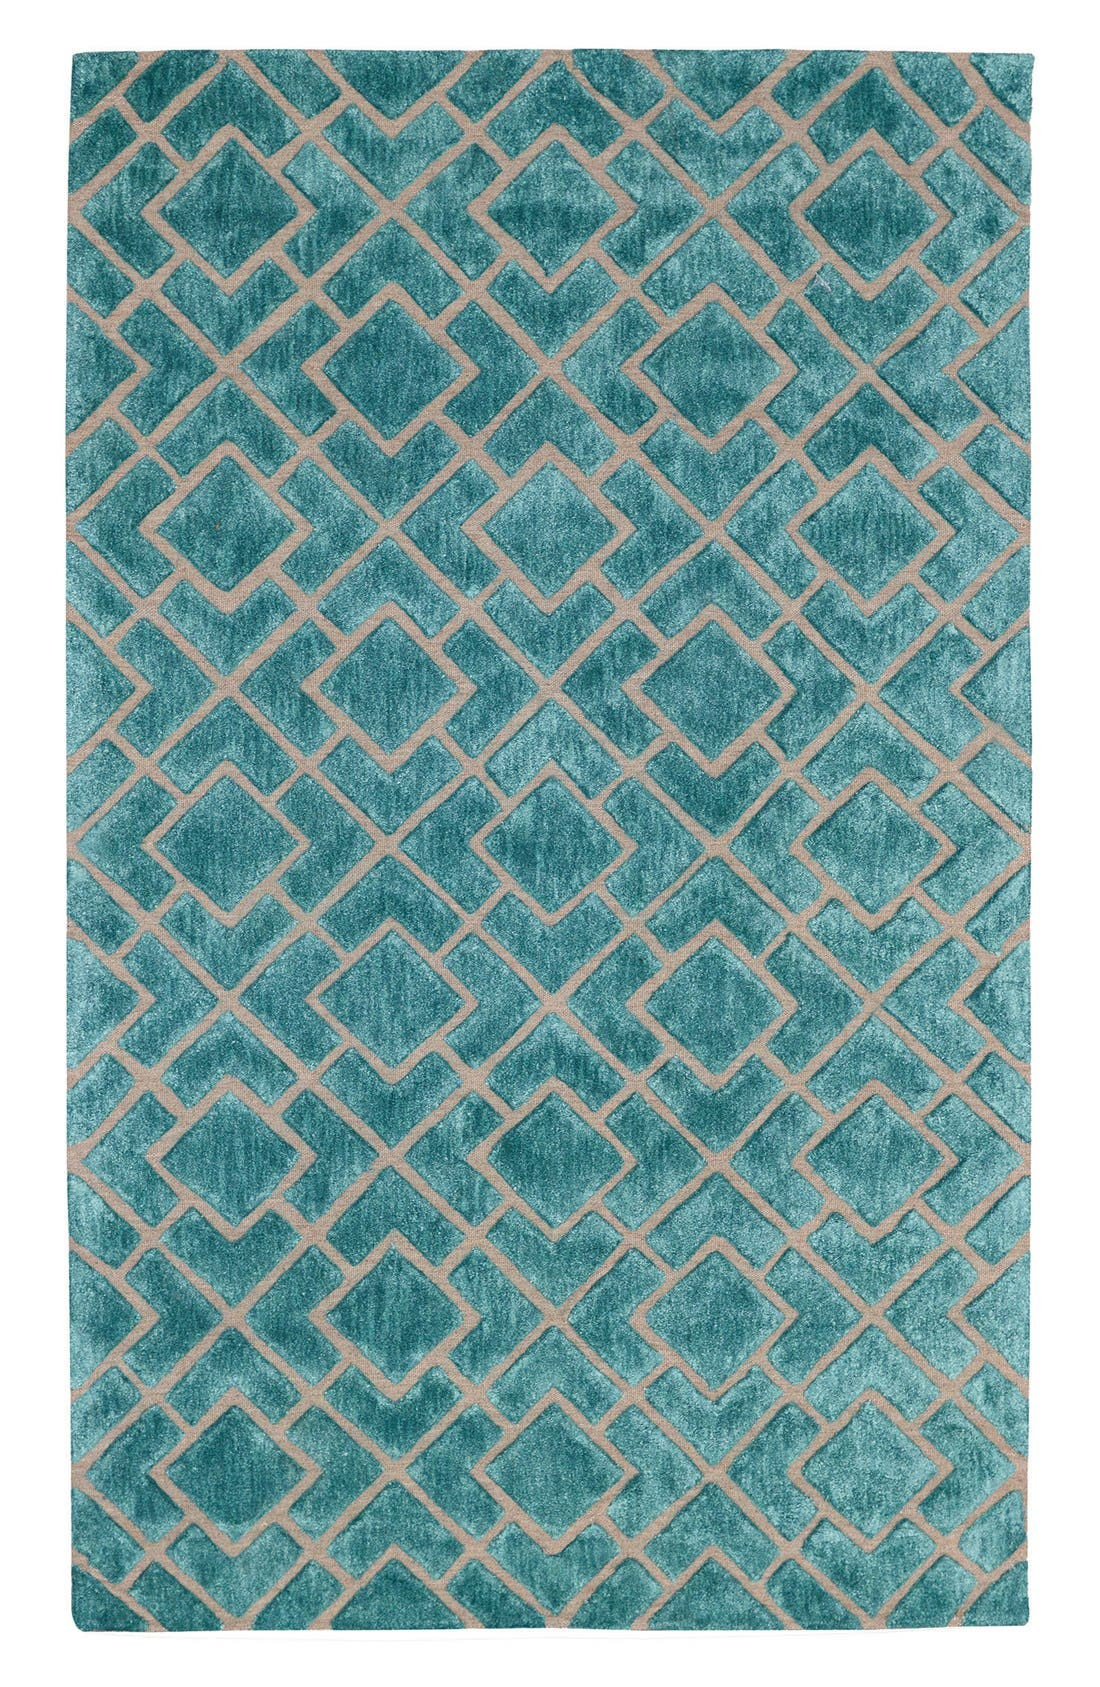 'Over Tufted - Turquoise' Rug,                         Main,                         color, Turquoise